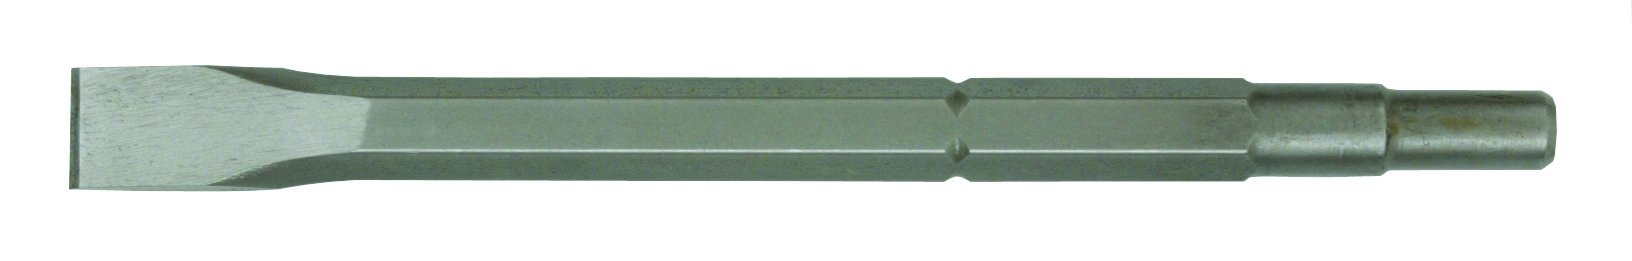 Hitachi 985381B Spline 3/4-Inch Hex 21/32-Inch Round Flat 1-Inch by 12-Inch Narrow Chisel, 25-Pack